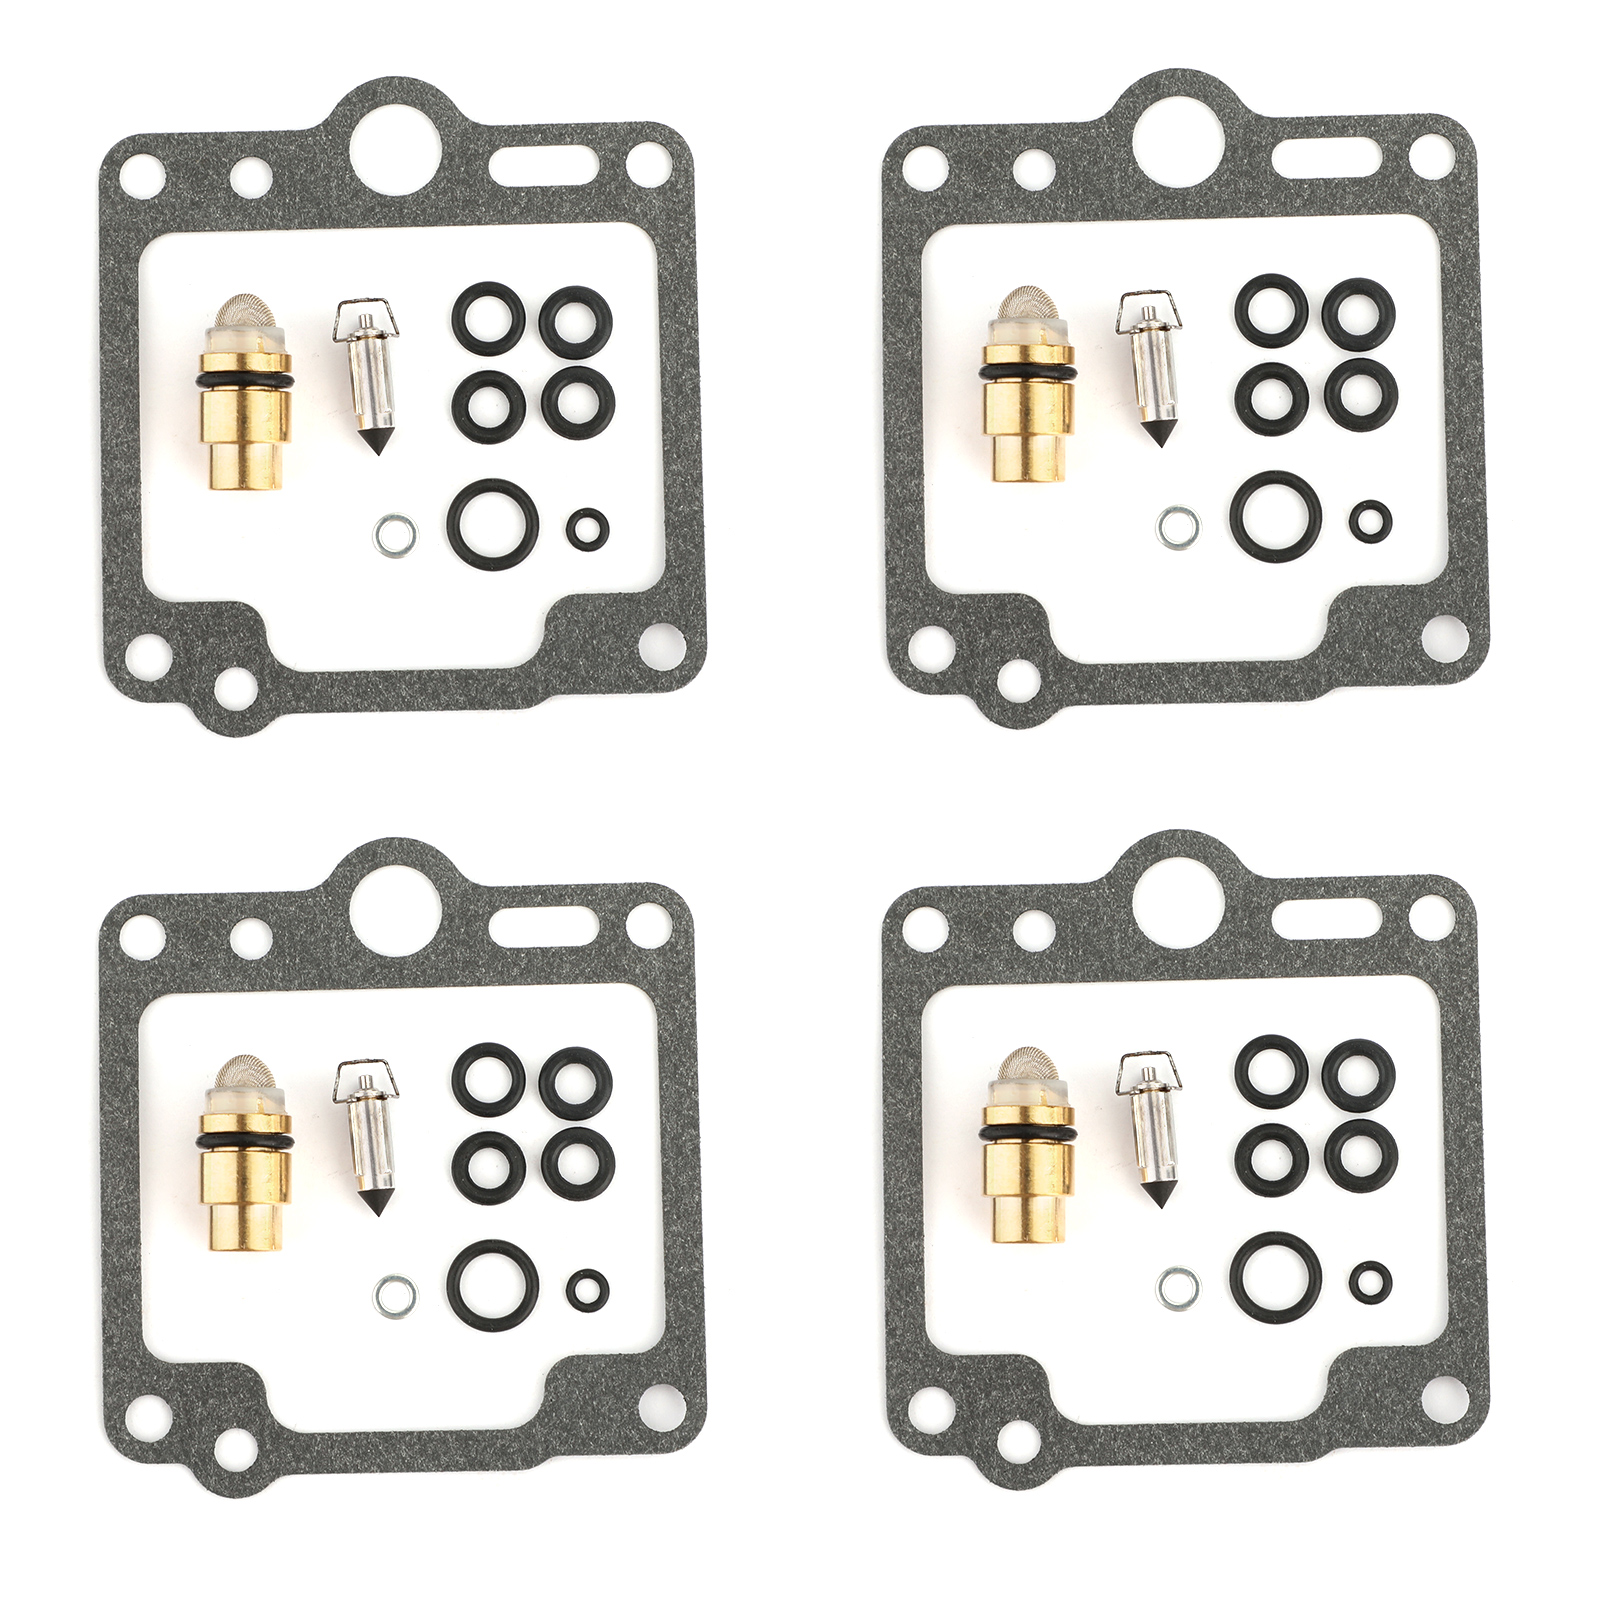 4 Sets Carburetor Repair Kit for Yamaha XJ700 Maxim X 700